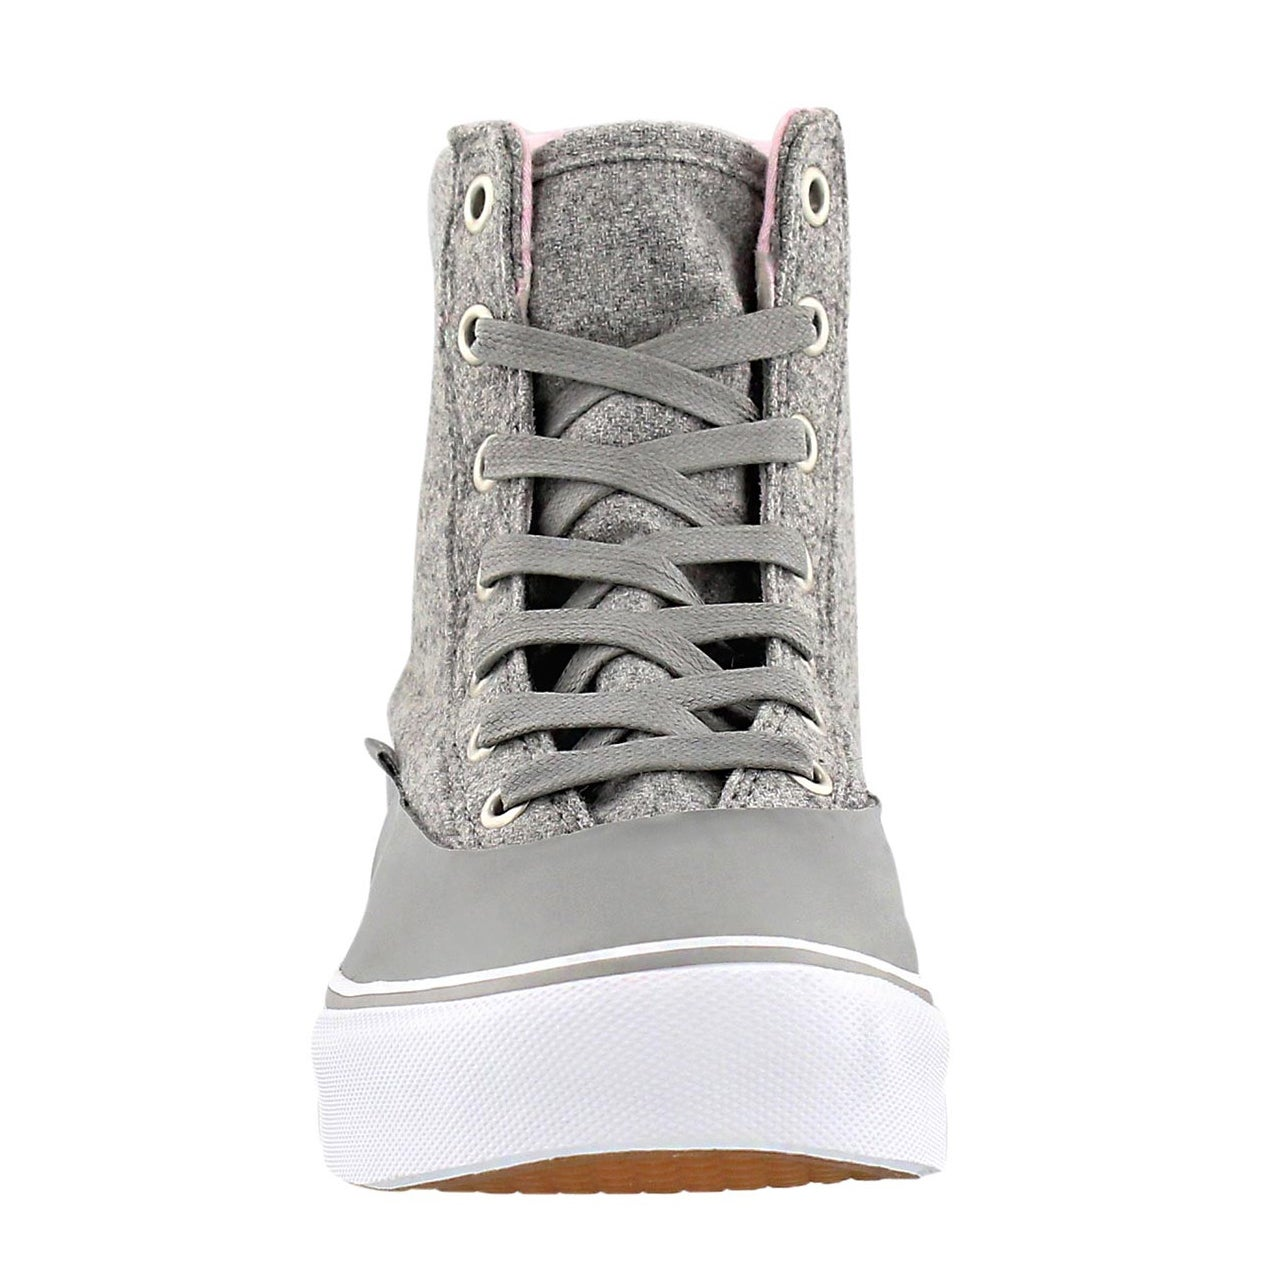 Lds Camden Hi Zip MTE grey lace up snkr